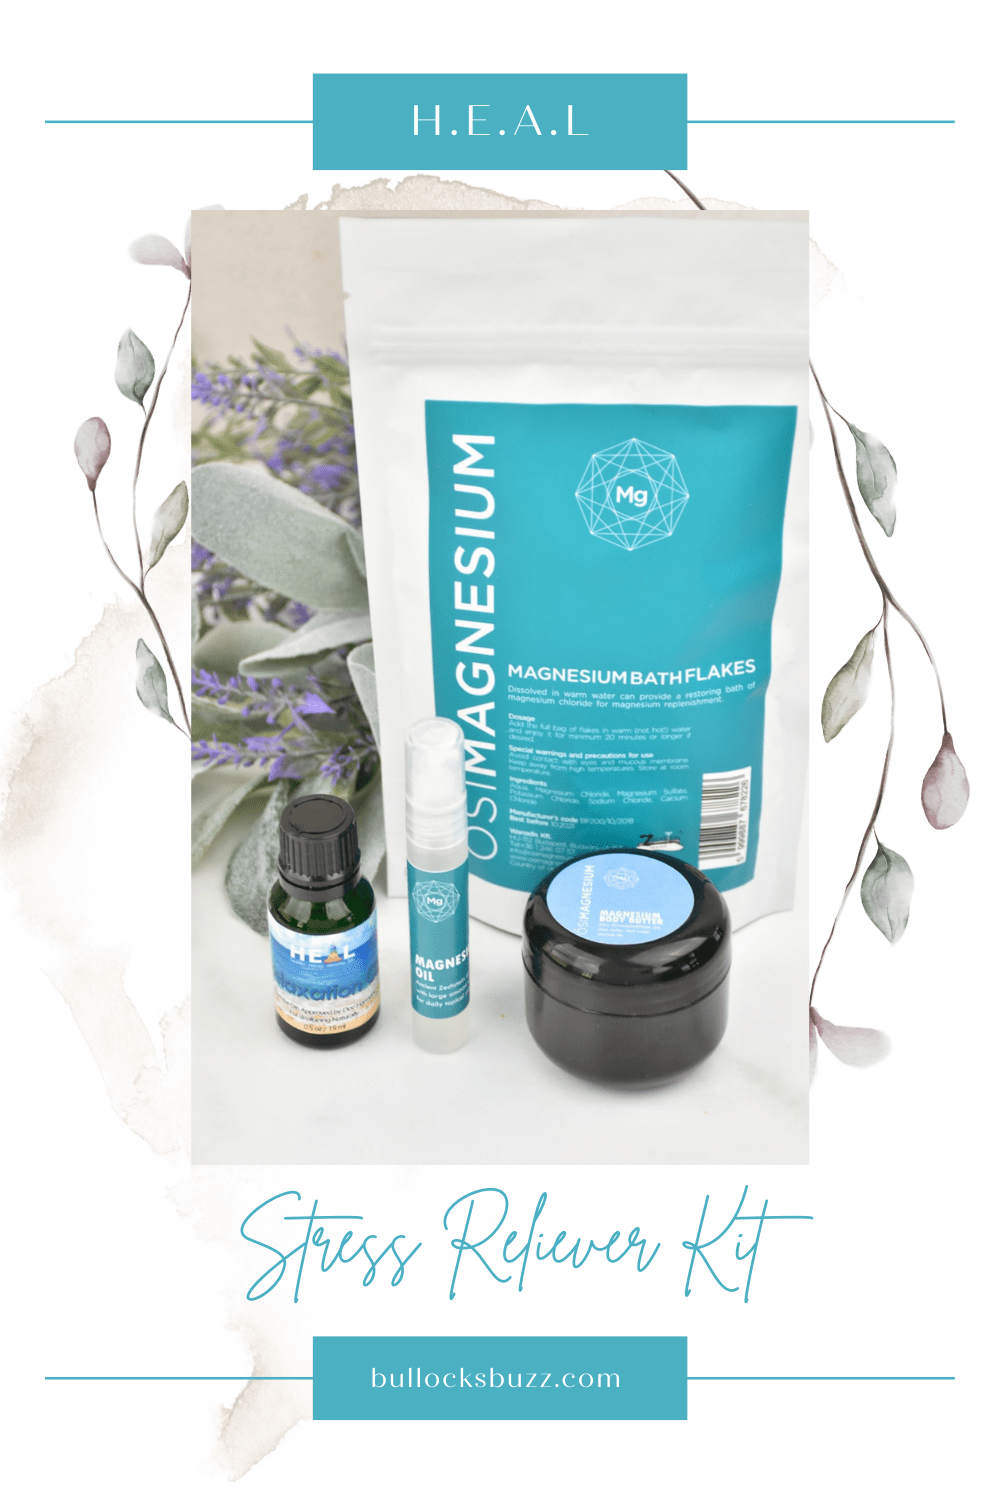 Take time to pamper yourself and nourish your body and soul with a luxurious gift set full of all-natural products, like this Stress Reliever Kit, from H.E.A.L.